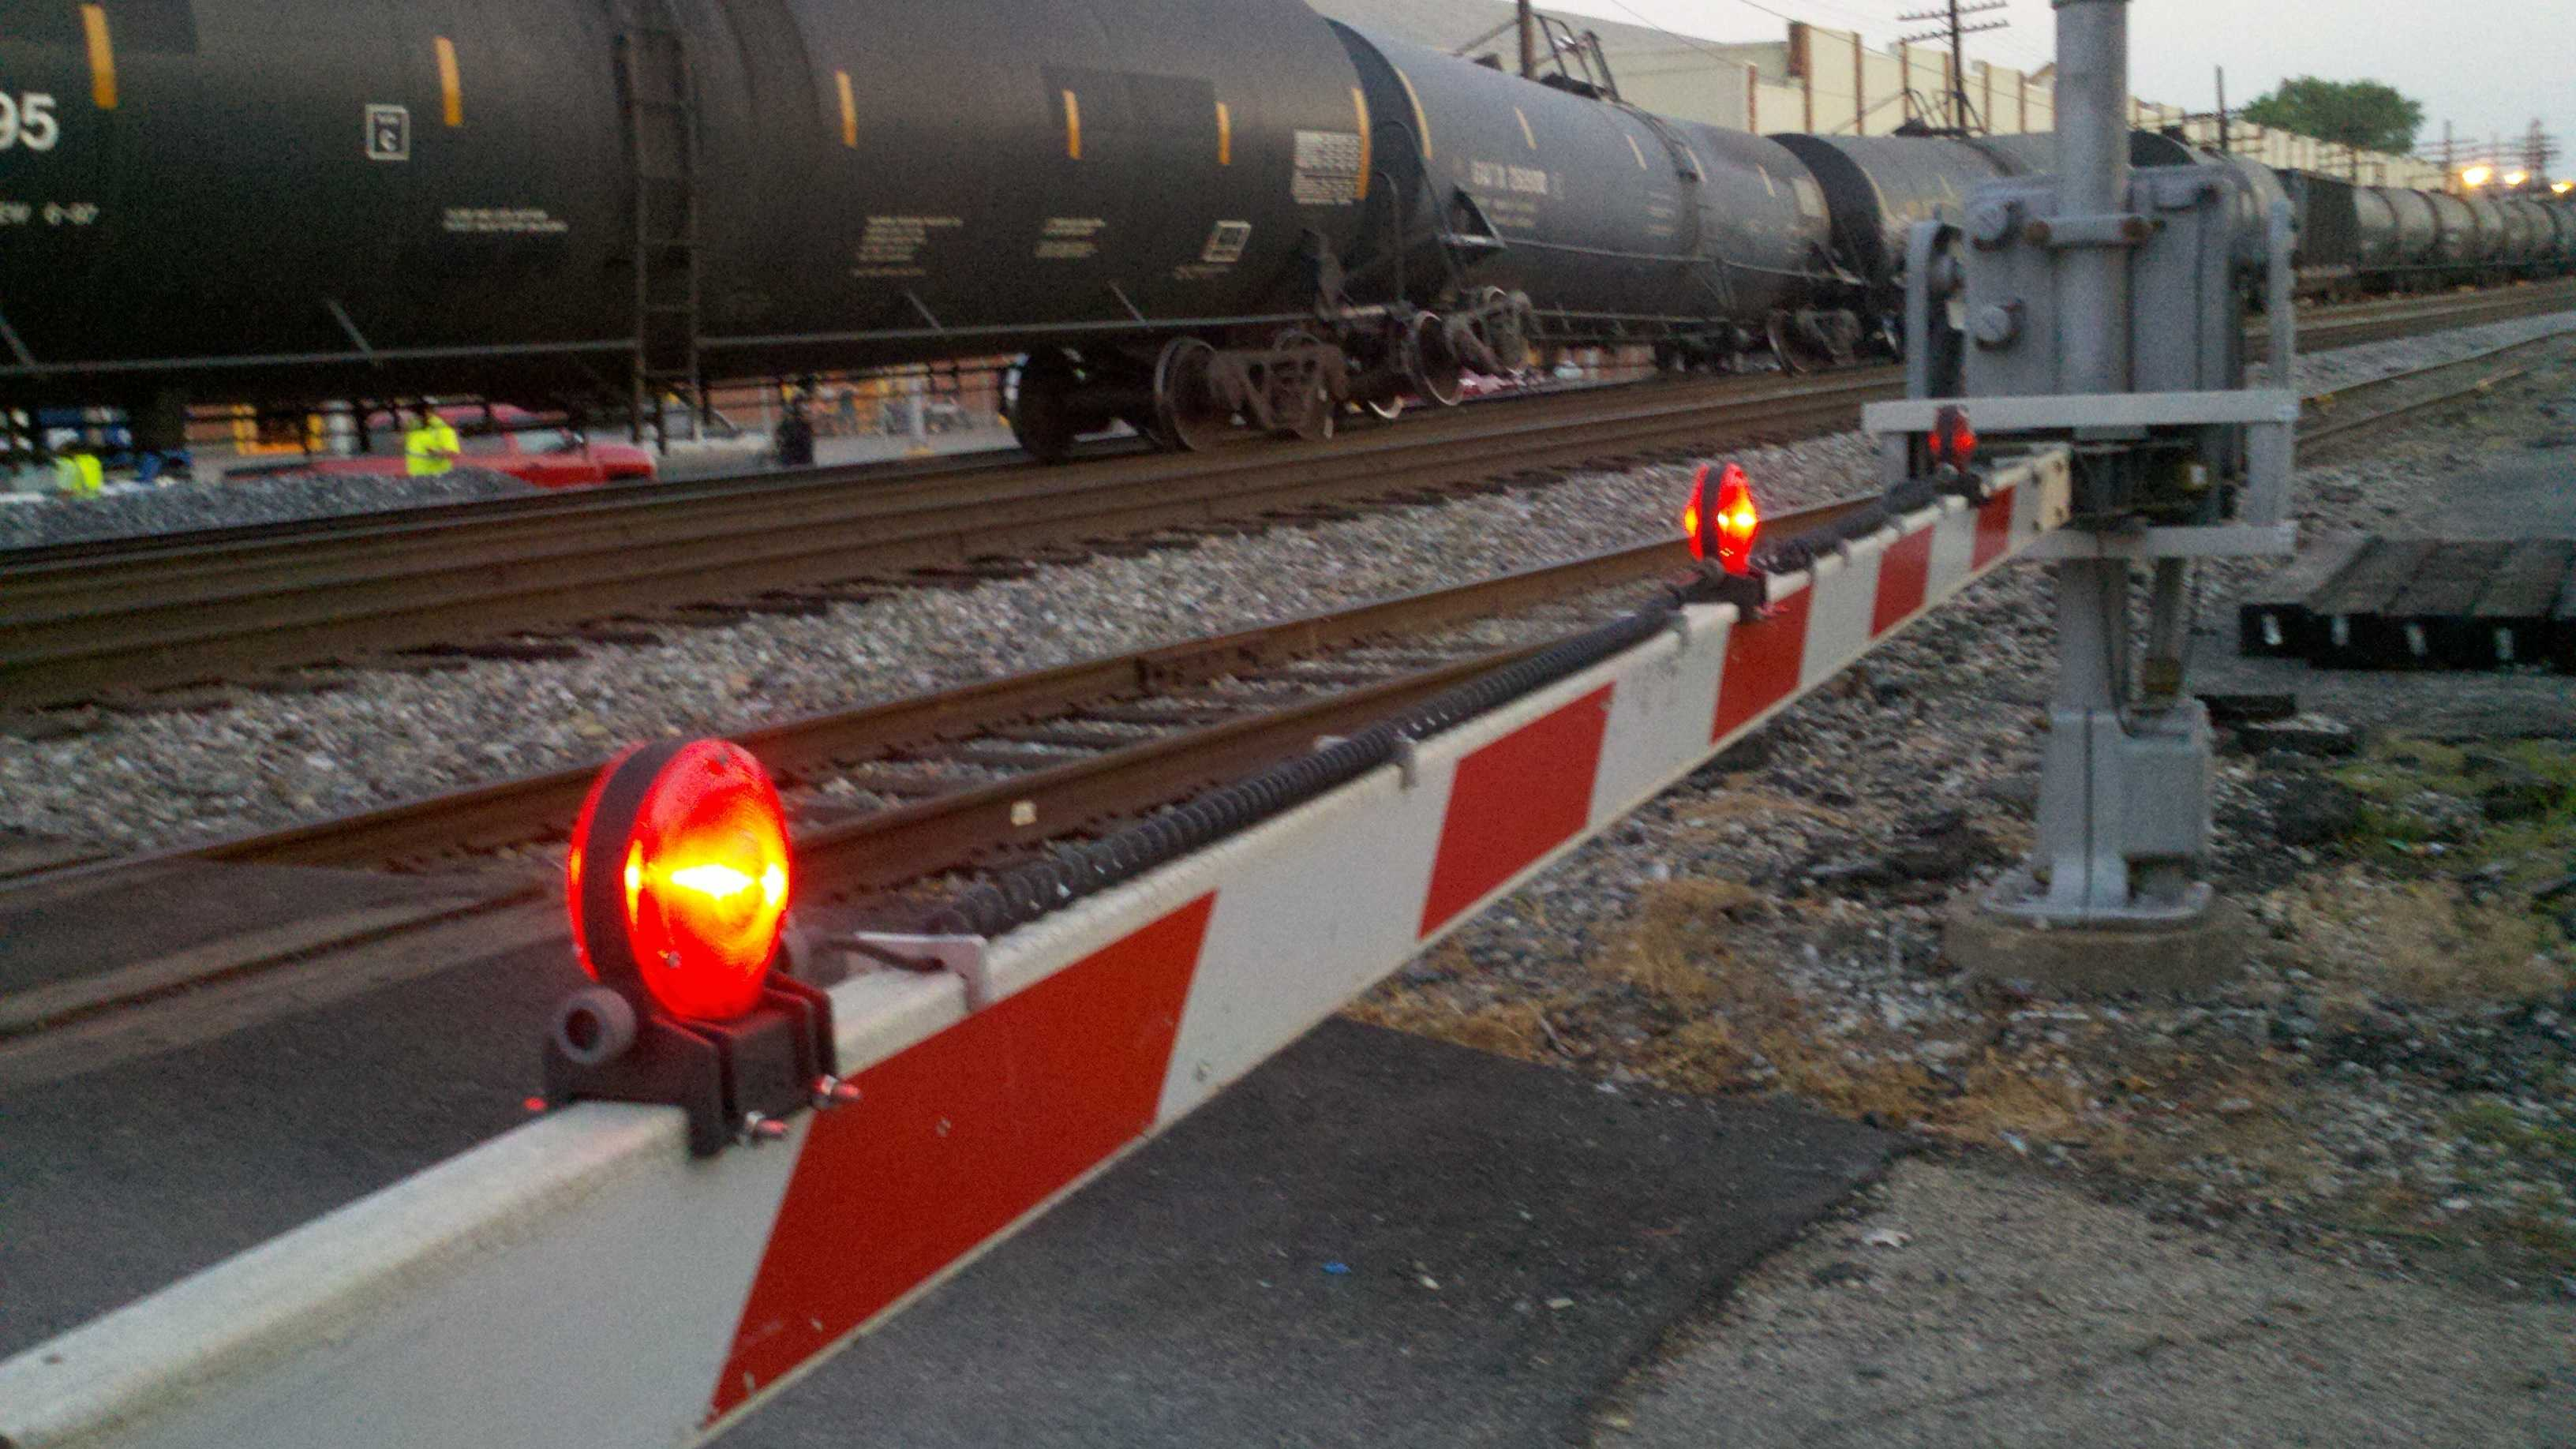 A train that jumped its tracks in Elmwood Place on Wednesday evening caused traffic back-ups for several hours.